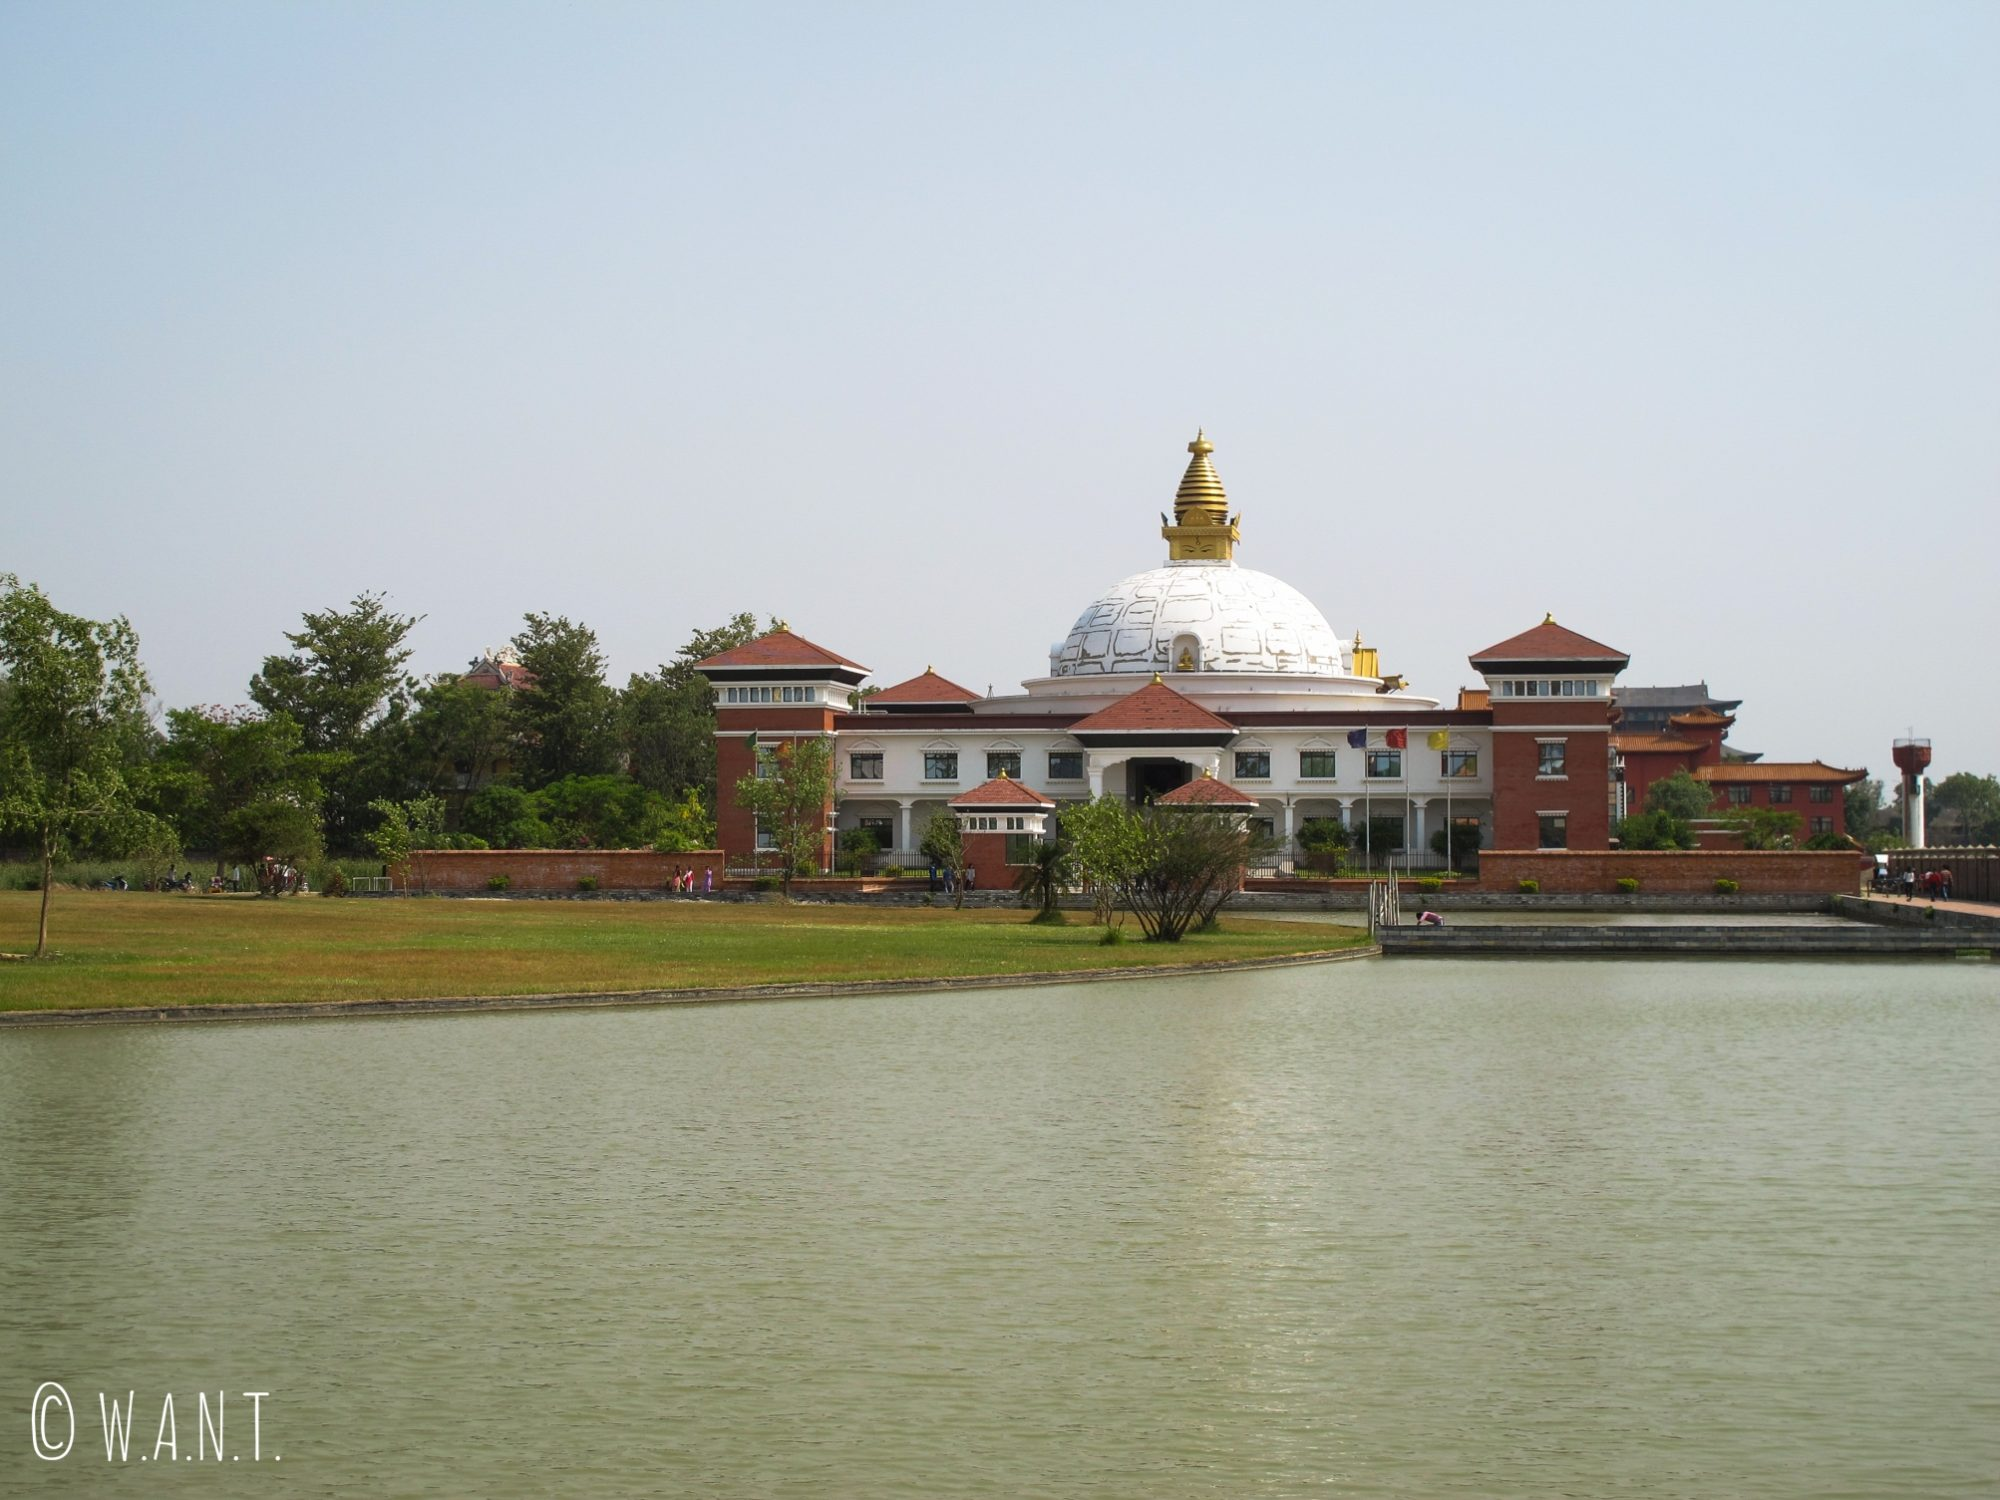 Vue sur le World Center for Peace and Unity dans les jardins de Lumbini